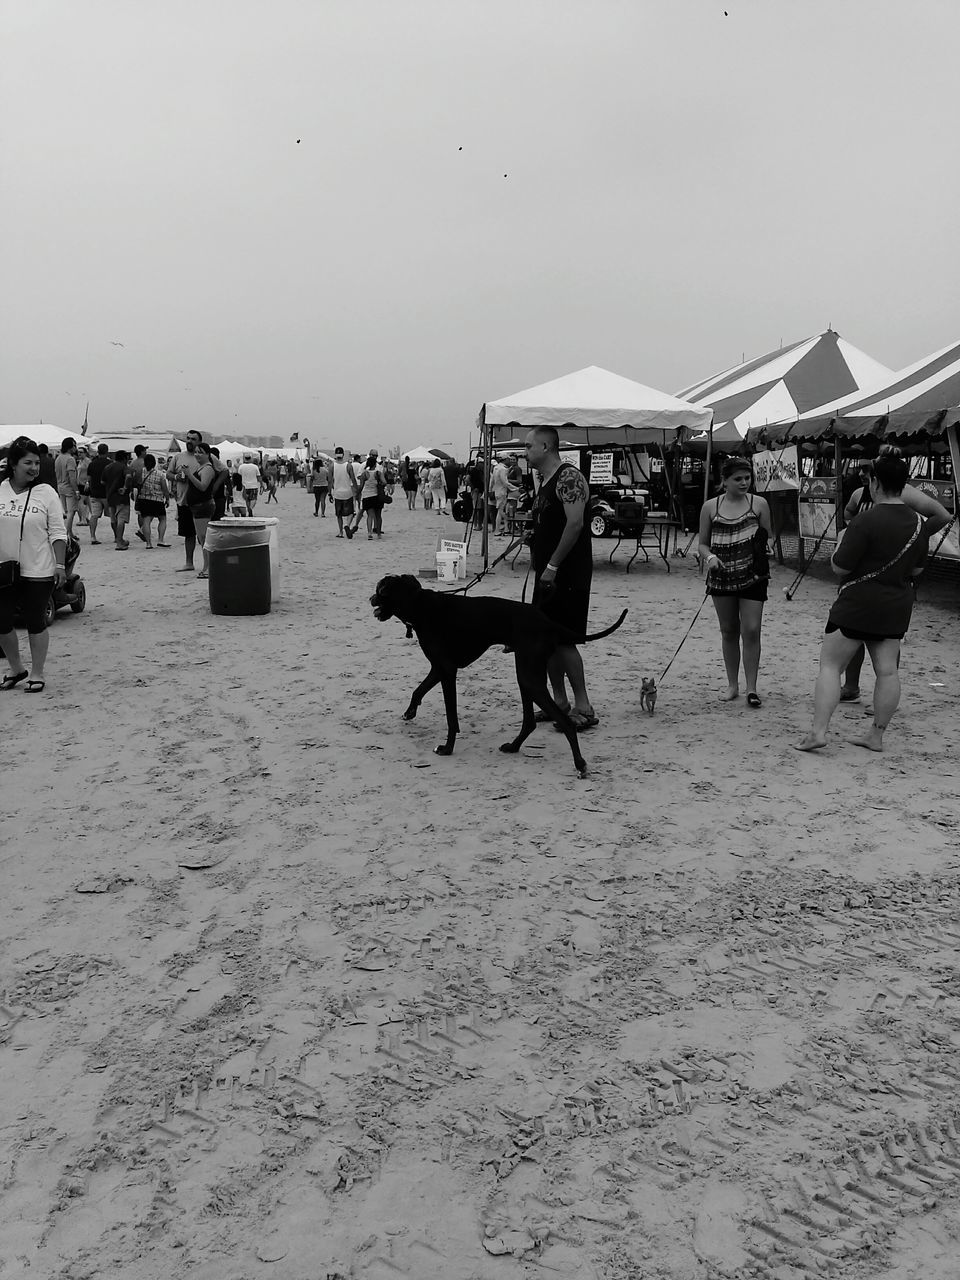 domestic animals, sand, horse, working animal, mammal, beach, large group of people, livestock, one animal, men, real people, nature, outdoors, day, clear sky, sky, pets, people